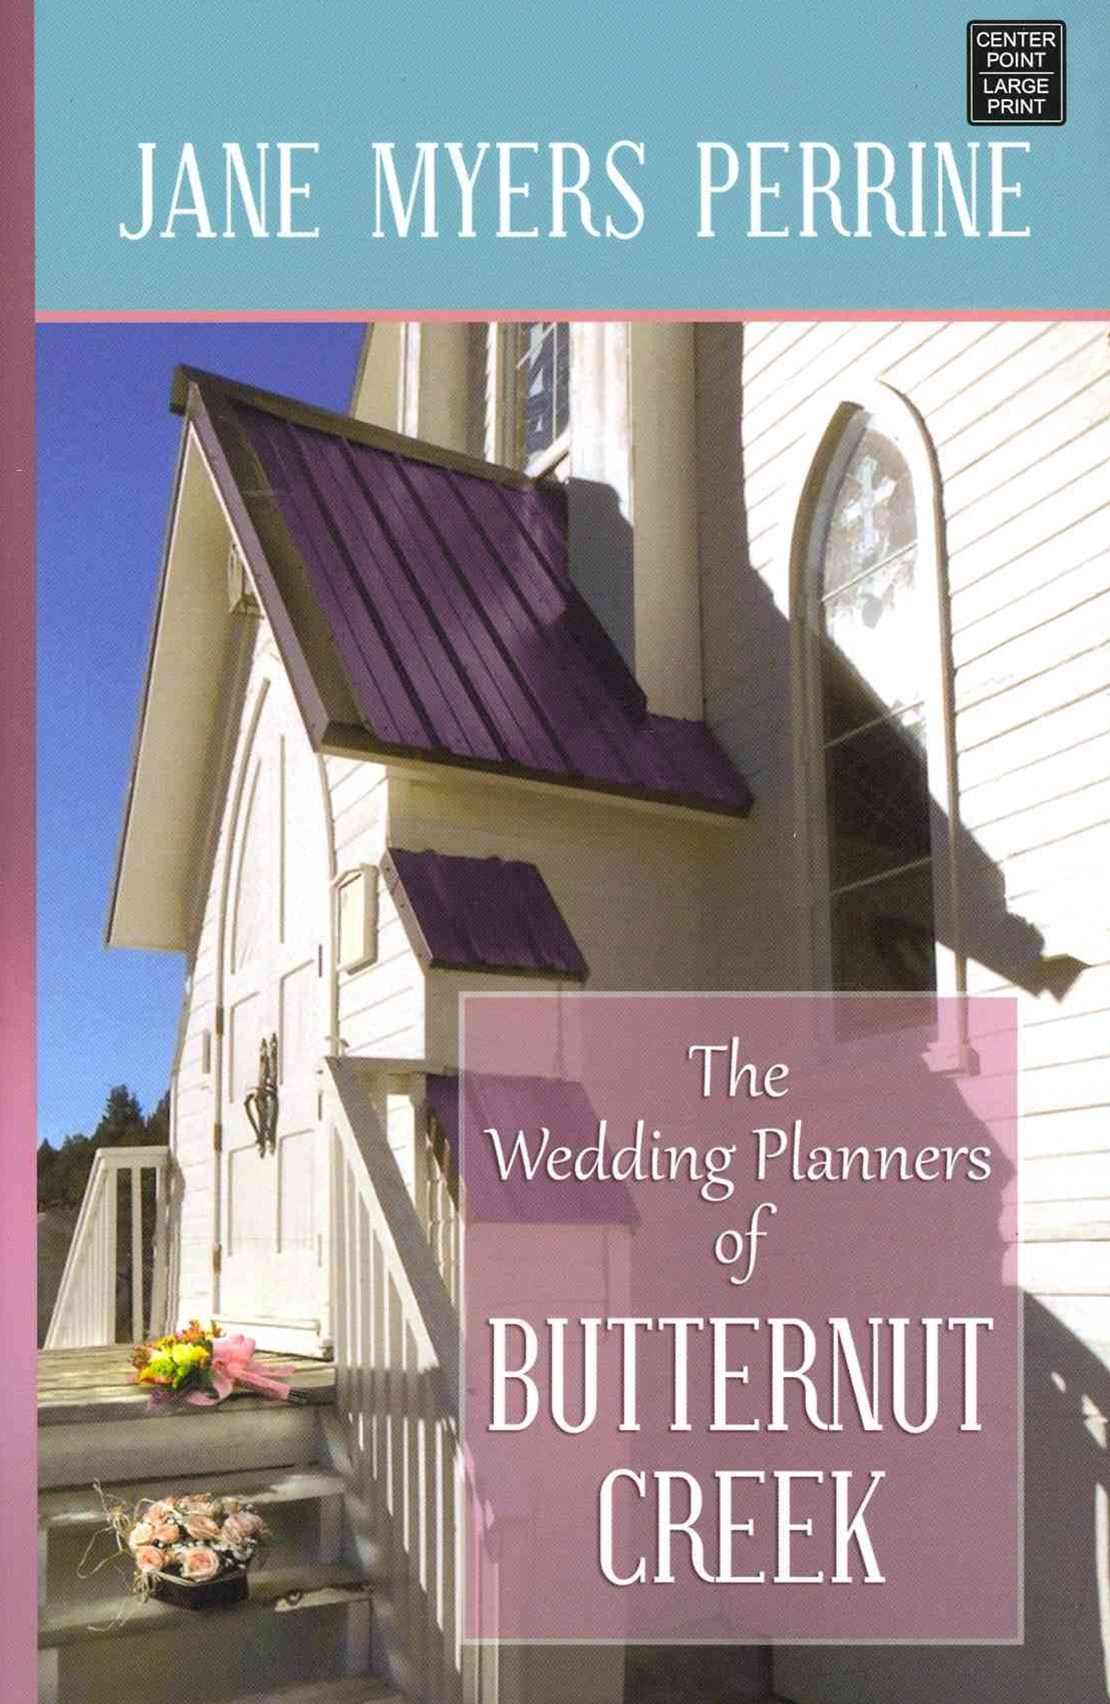 The Wedding Planners of Butternut Creek